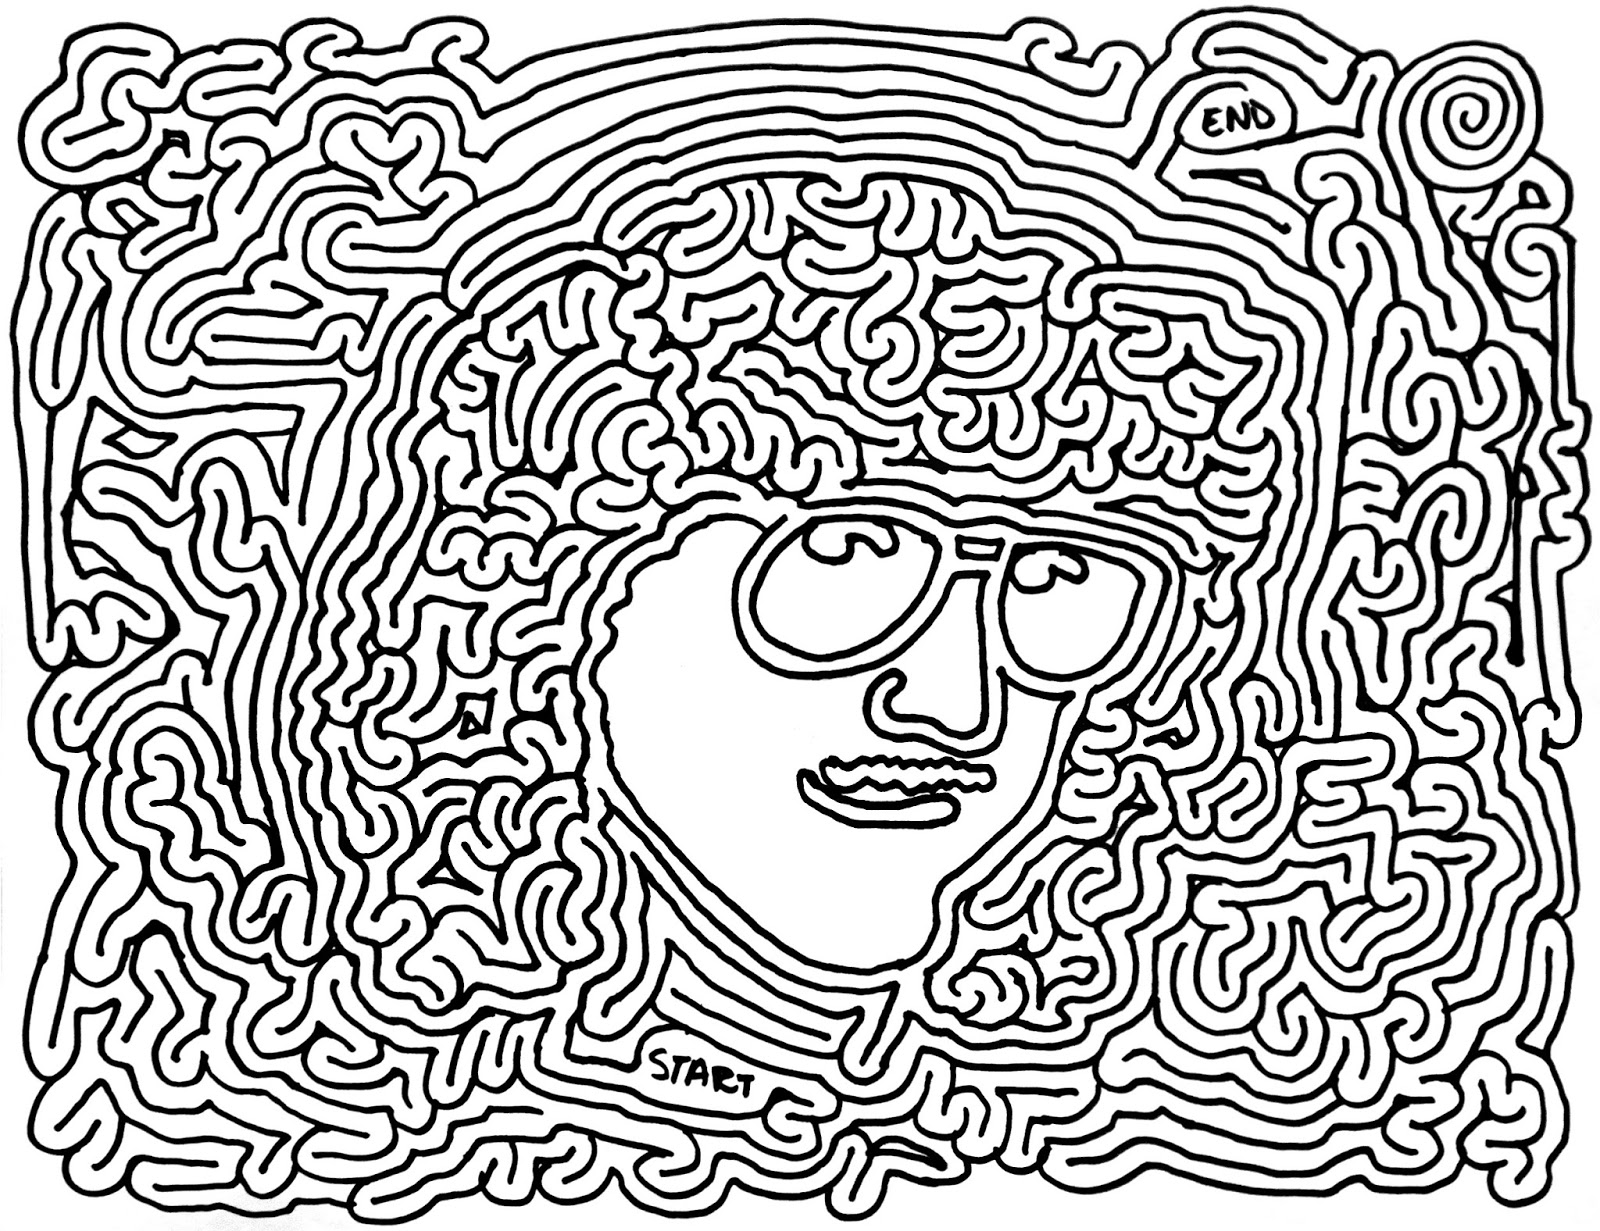 psychedelic coloring pages - photo#35